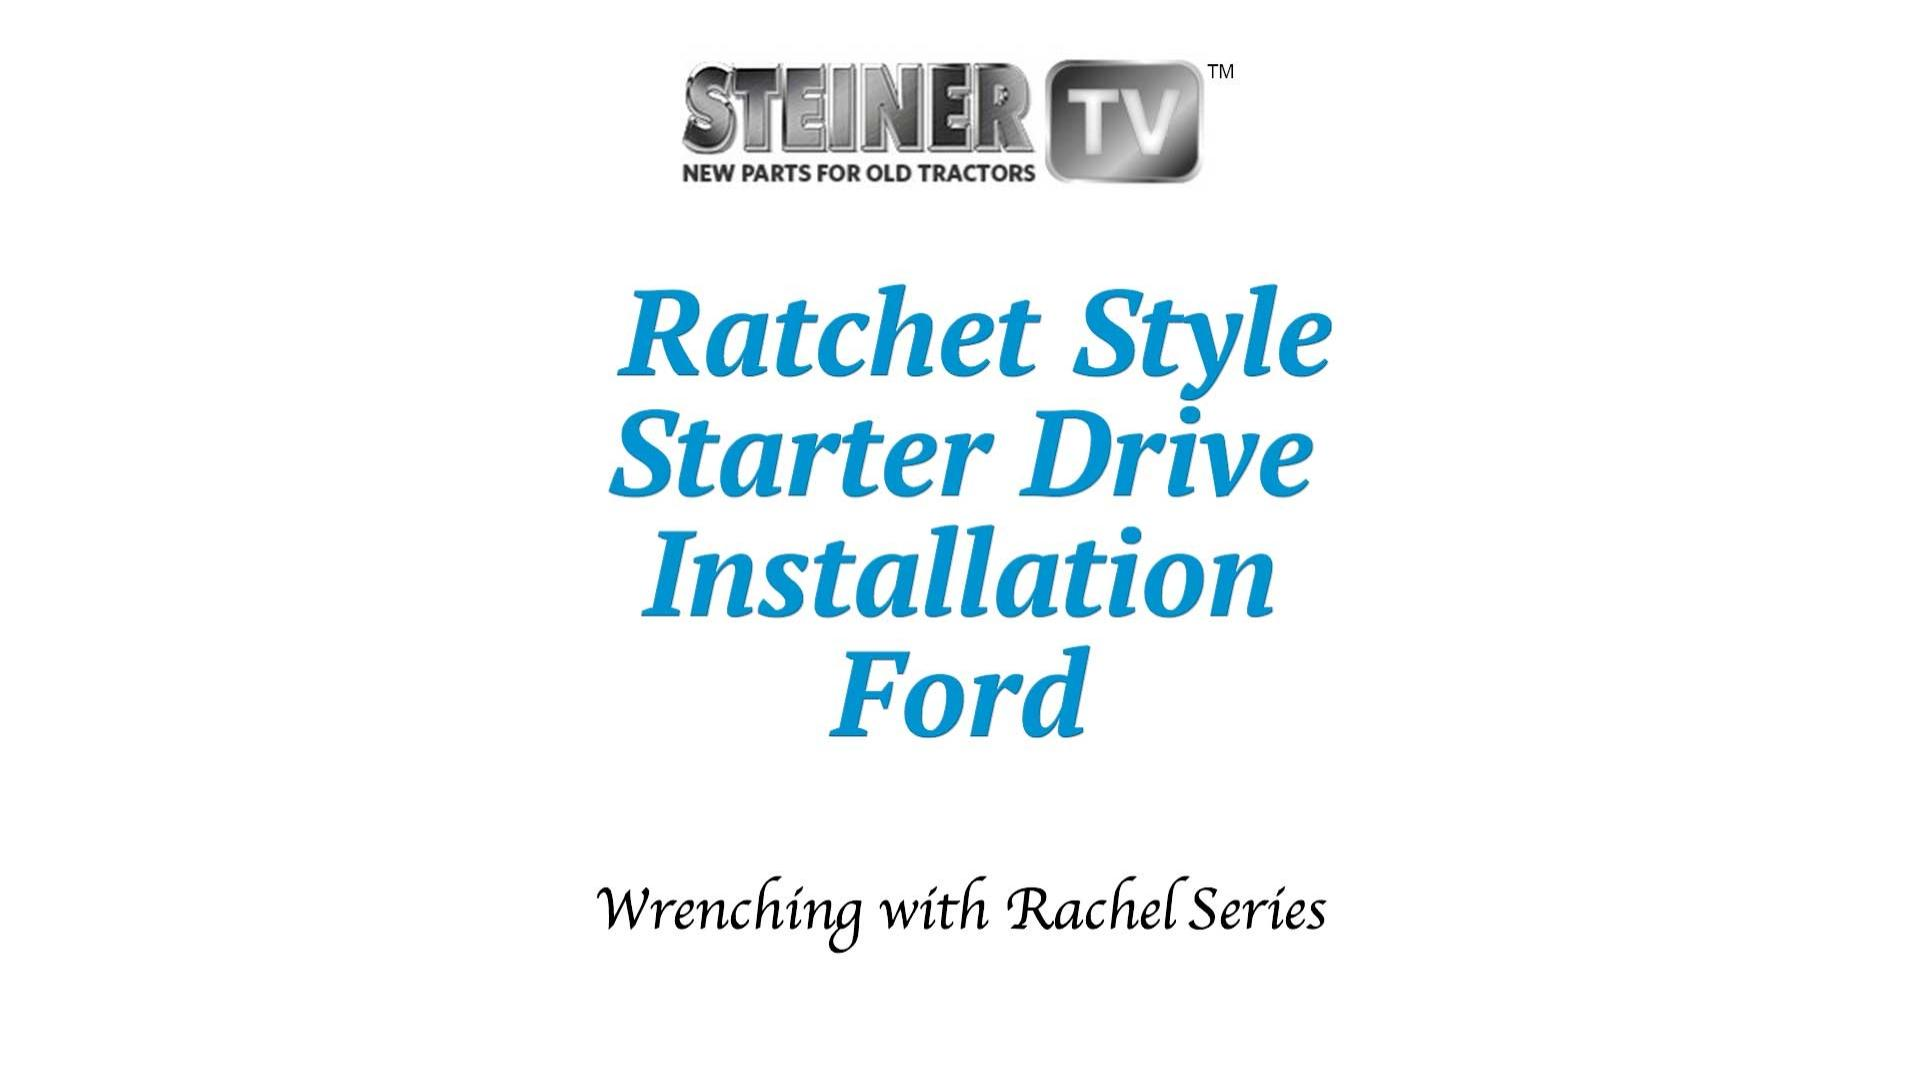 Ratchet Style Starter Drive Installation On A Ford 1953 8n 601 Wiring Diagram